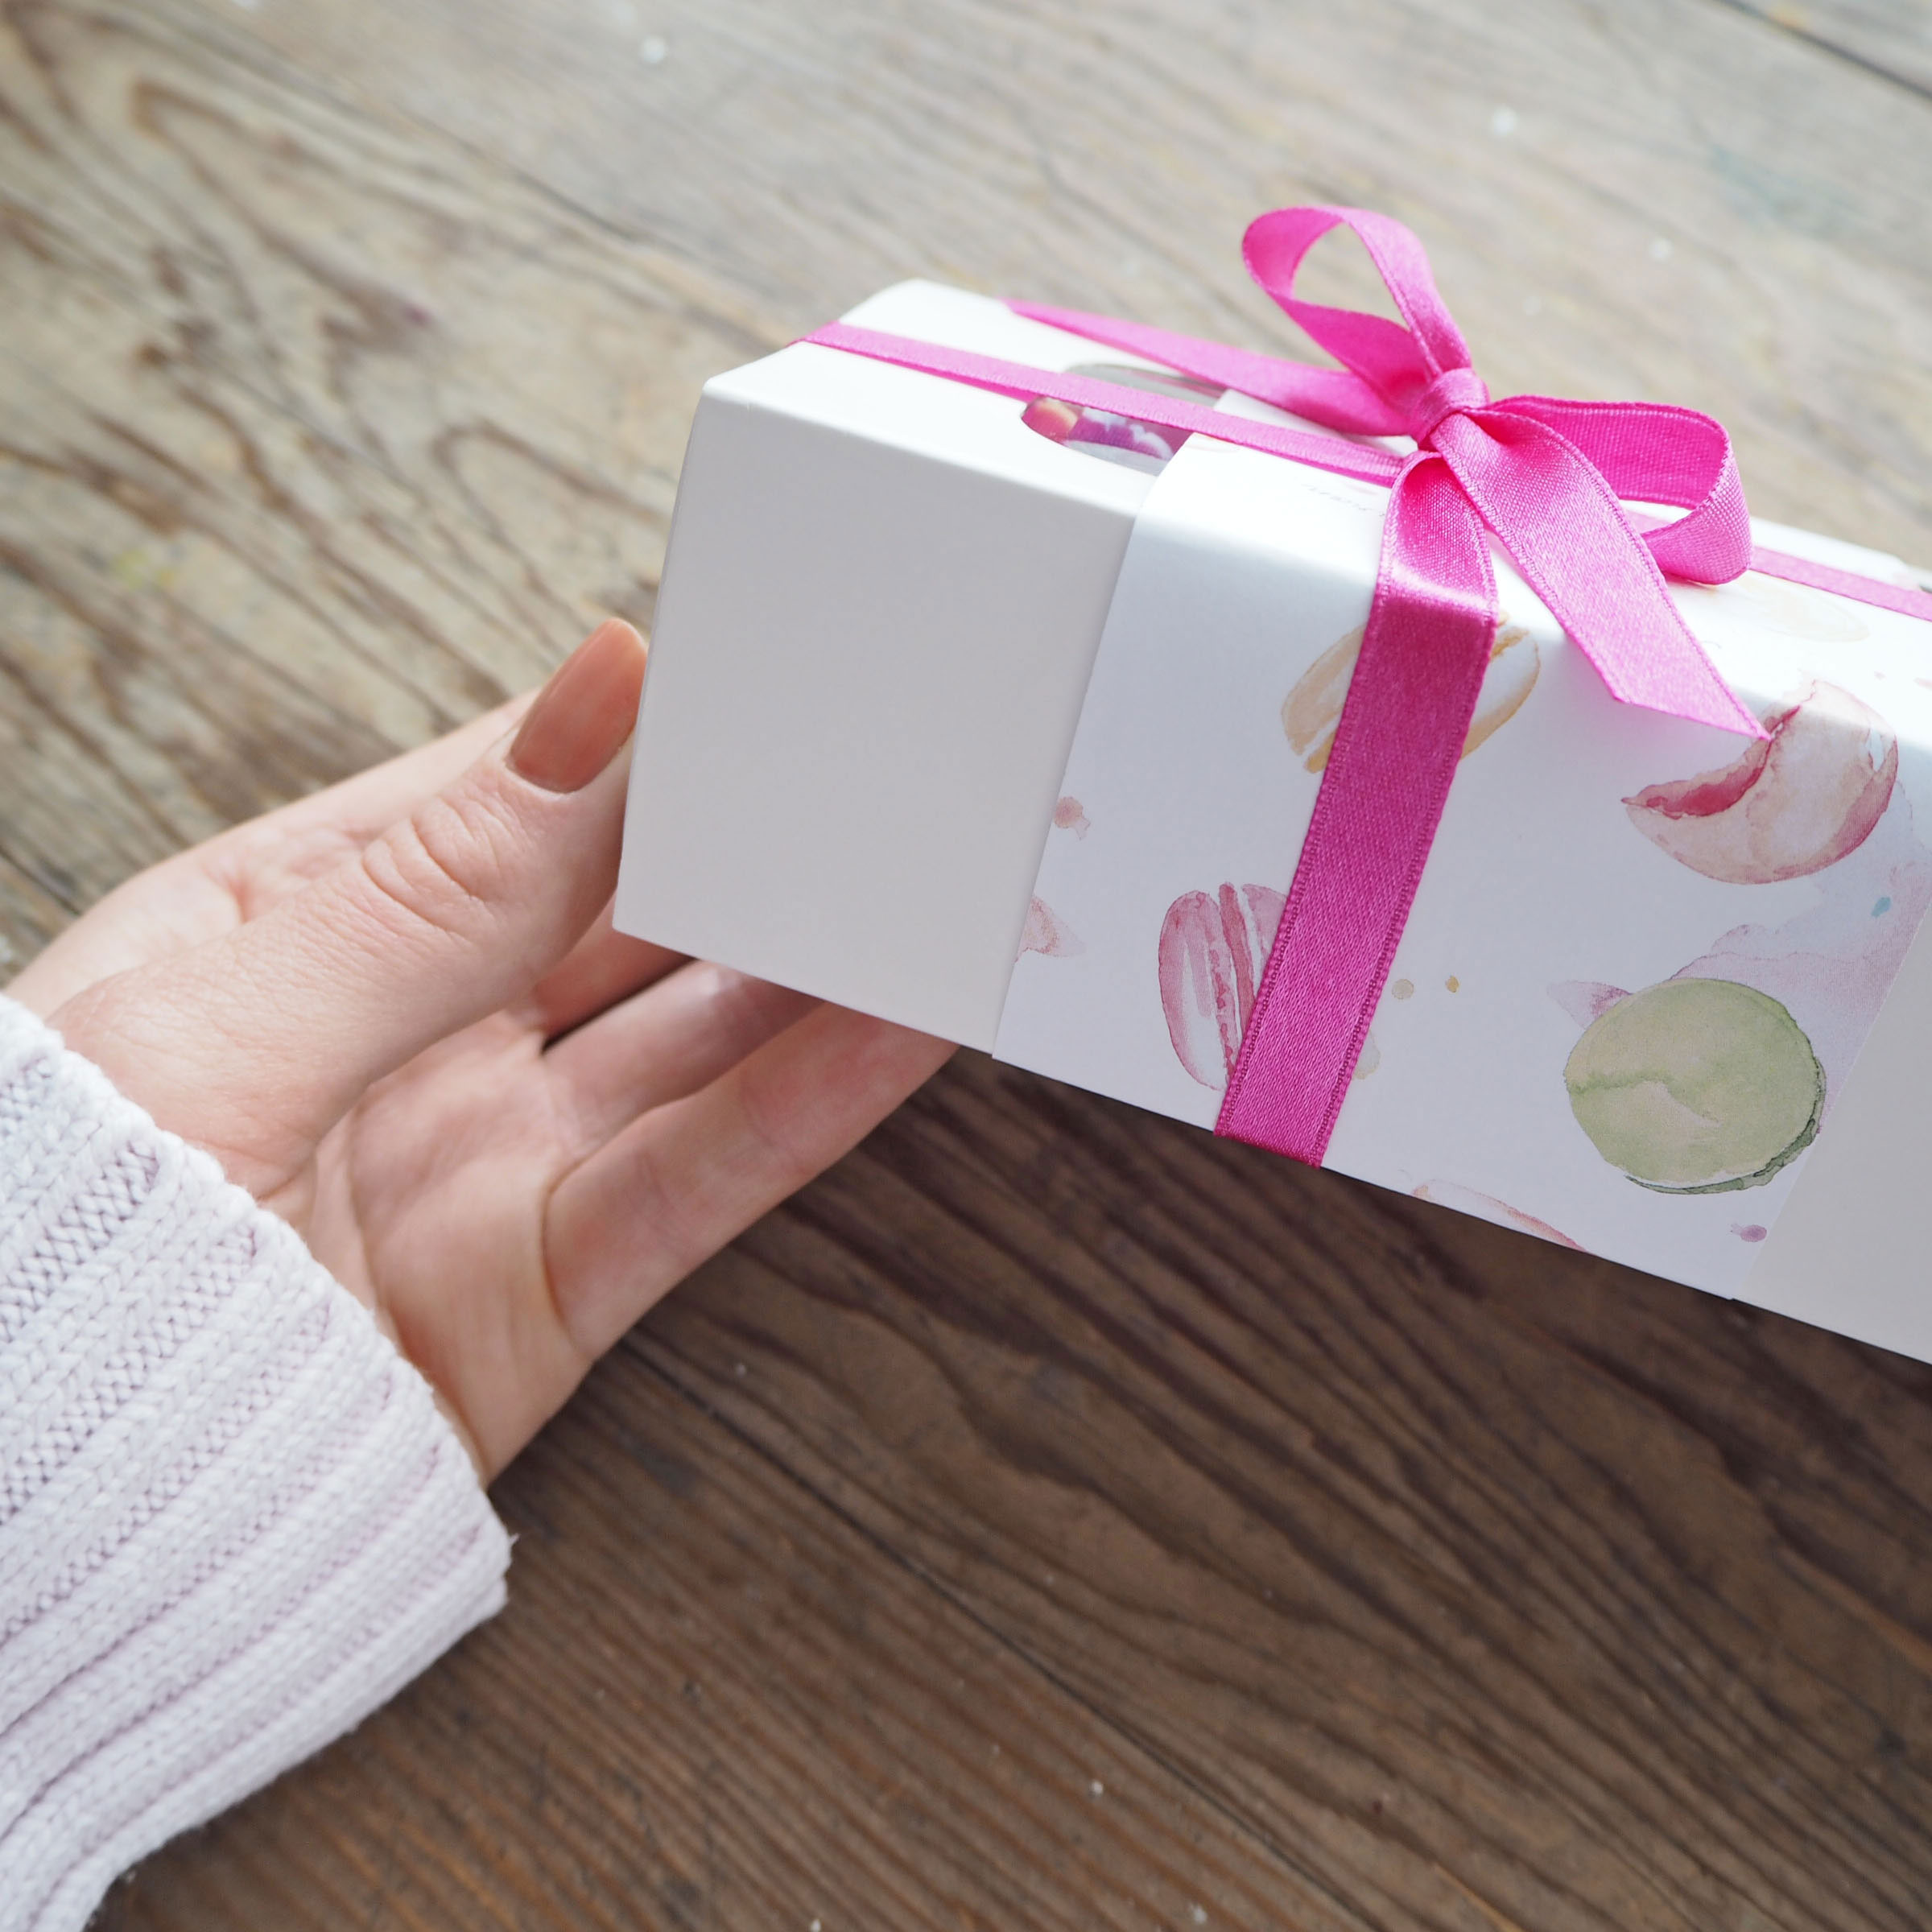 Boutique Macaron - Product Packaging